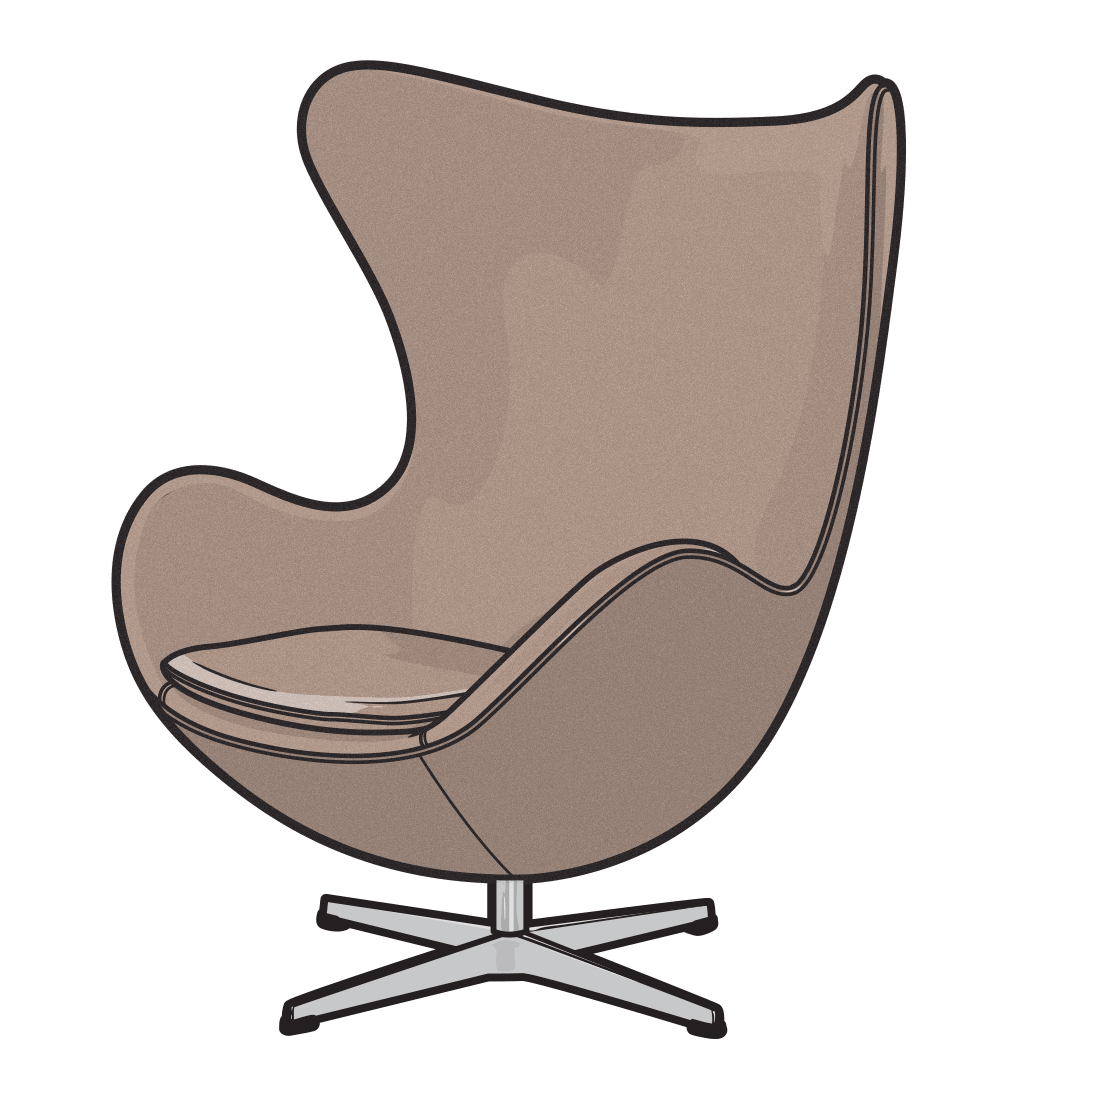 Armchair drawing cartoon. Furniture illustration drawings of